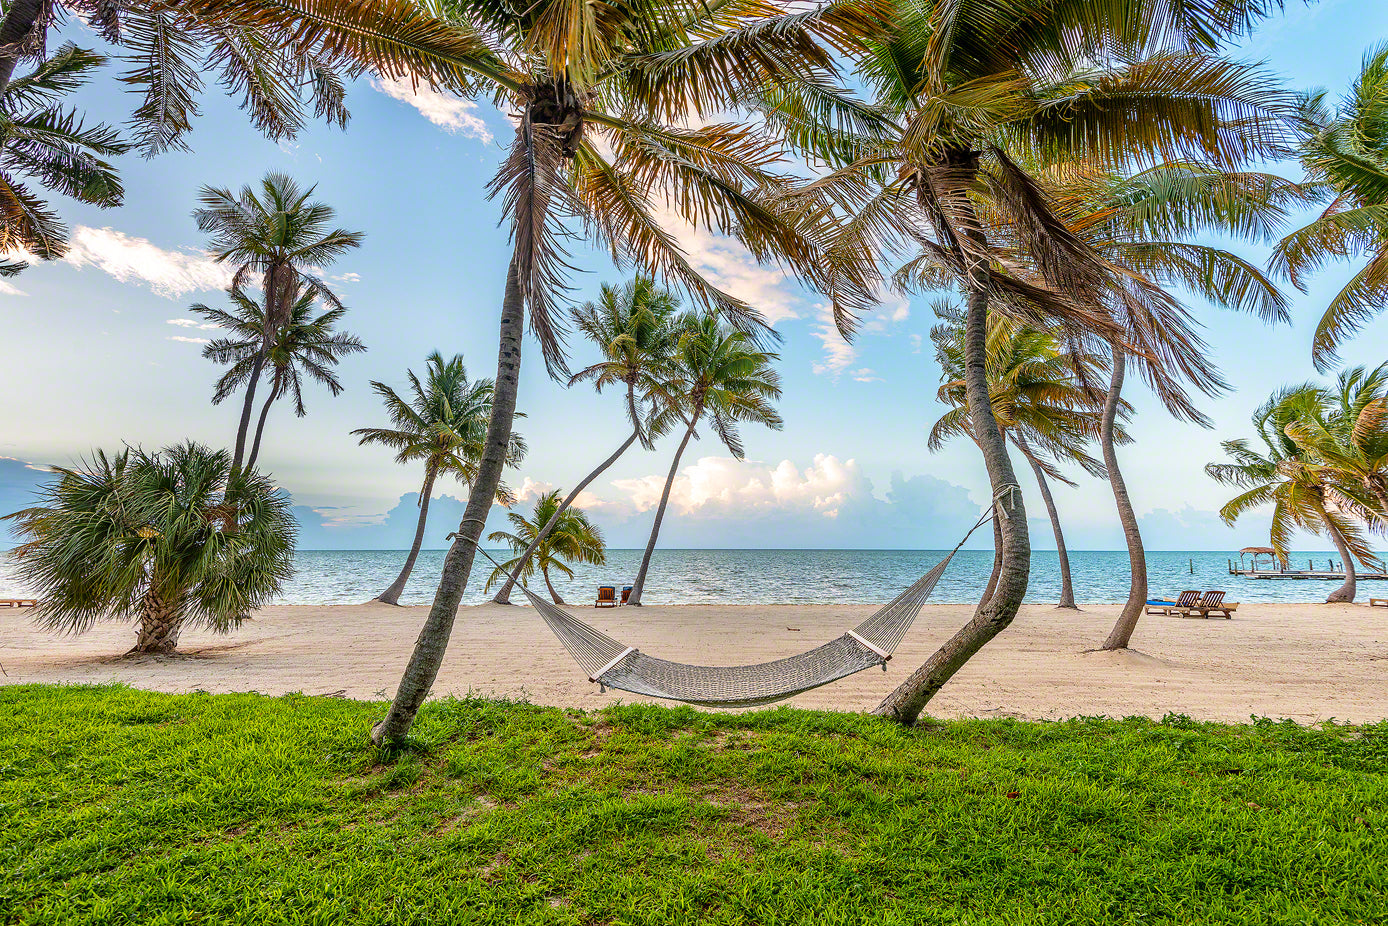 A photo of a hammock in the palm trees on the beach in Islamorada, Key Florida